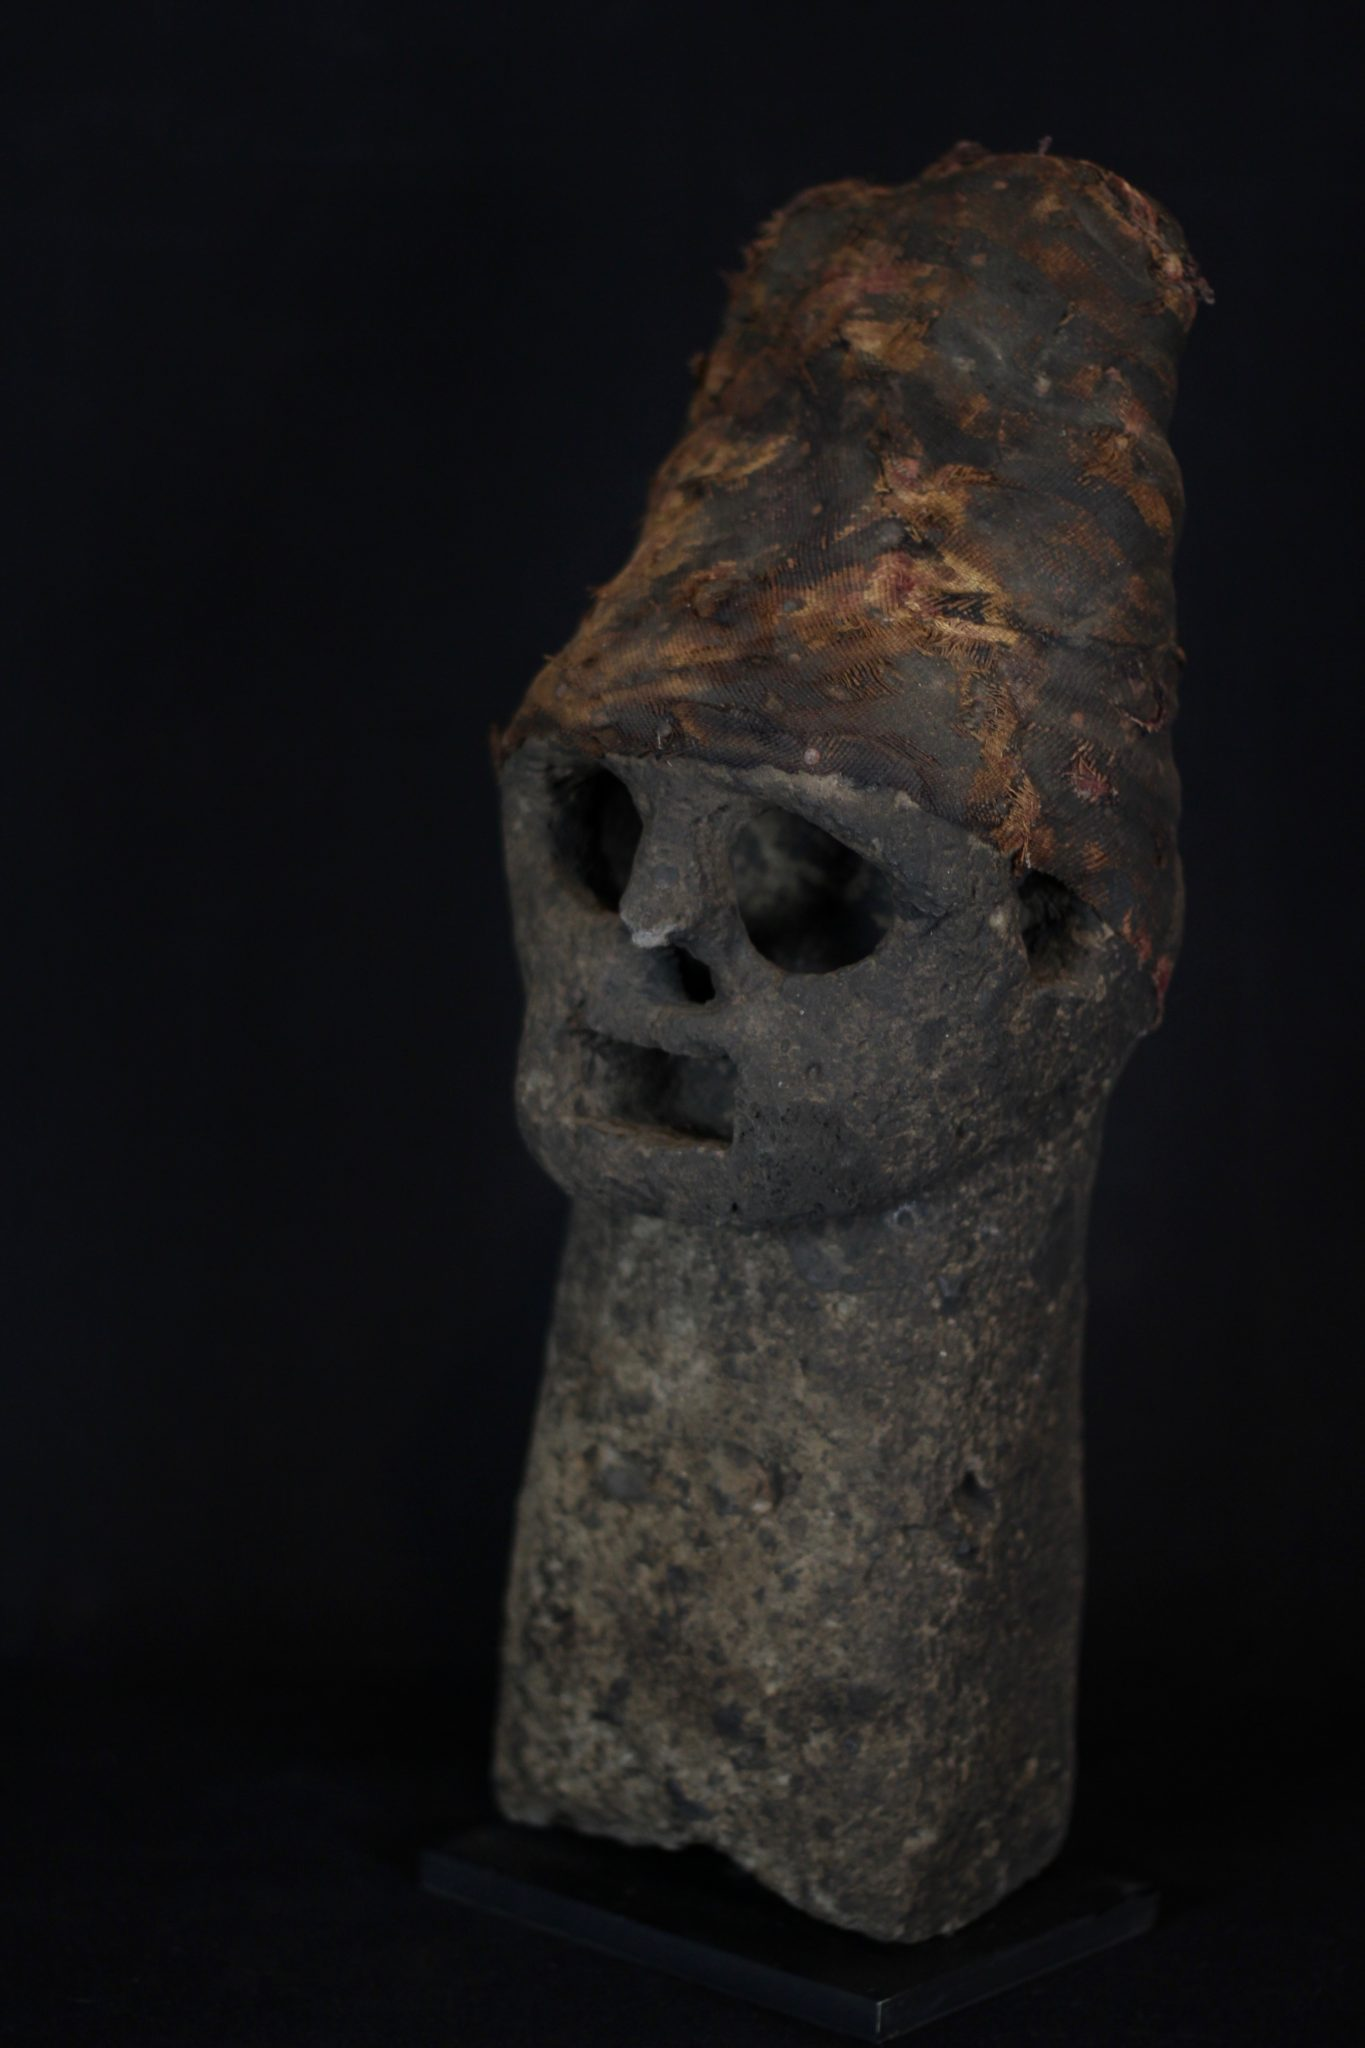 """Volcano God Effigy (exceptionally rare), Flores Island, Lesser Sunda Islands, Indonesia, Manga Lewa Village, Mid 18th c, Stone, cloth. Used by shaman for predicting volcanic eruptions. Passed down through four generations. 15"""" x 5 ½ x 5 ¾"""", sold"""